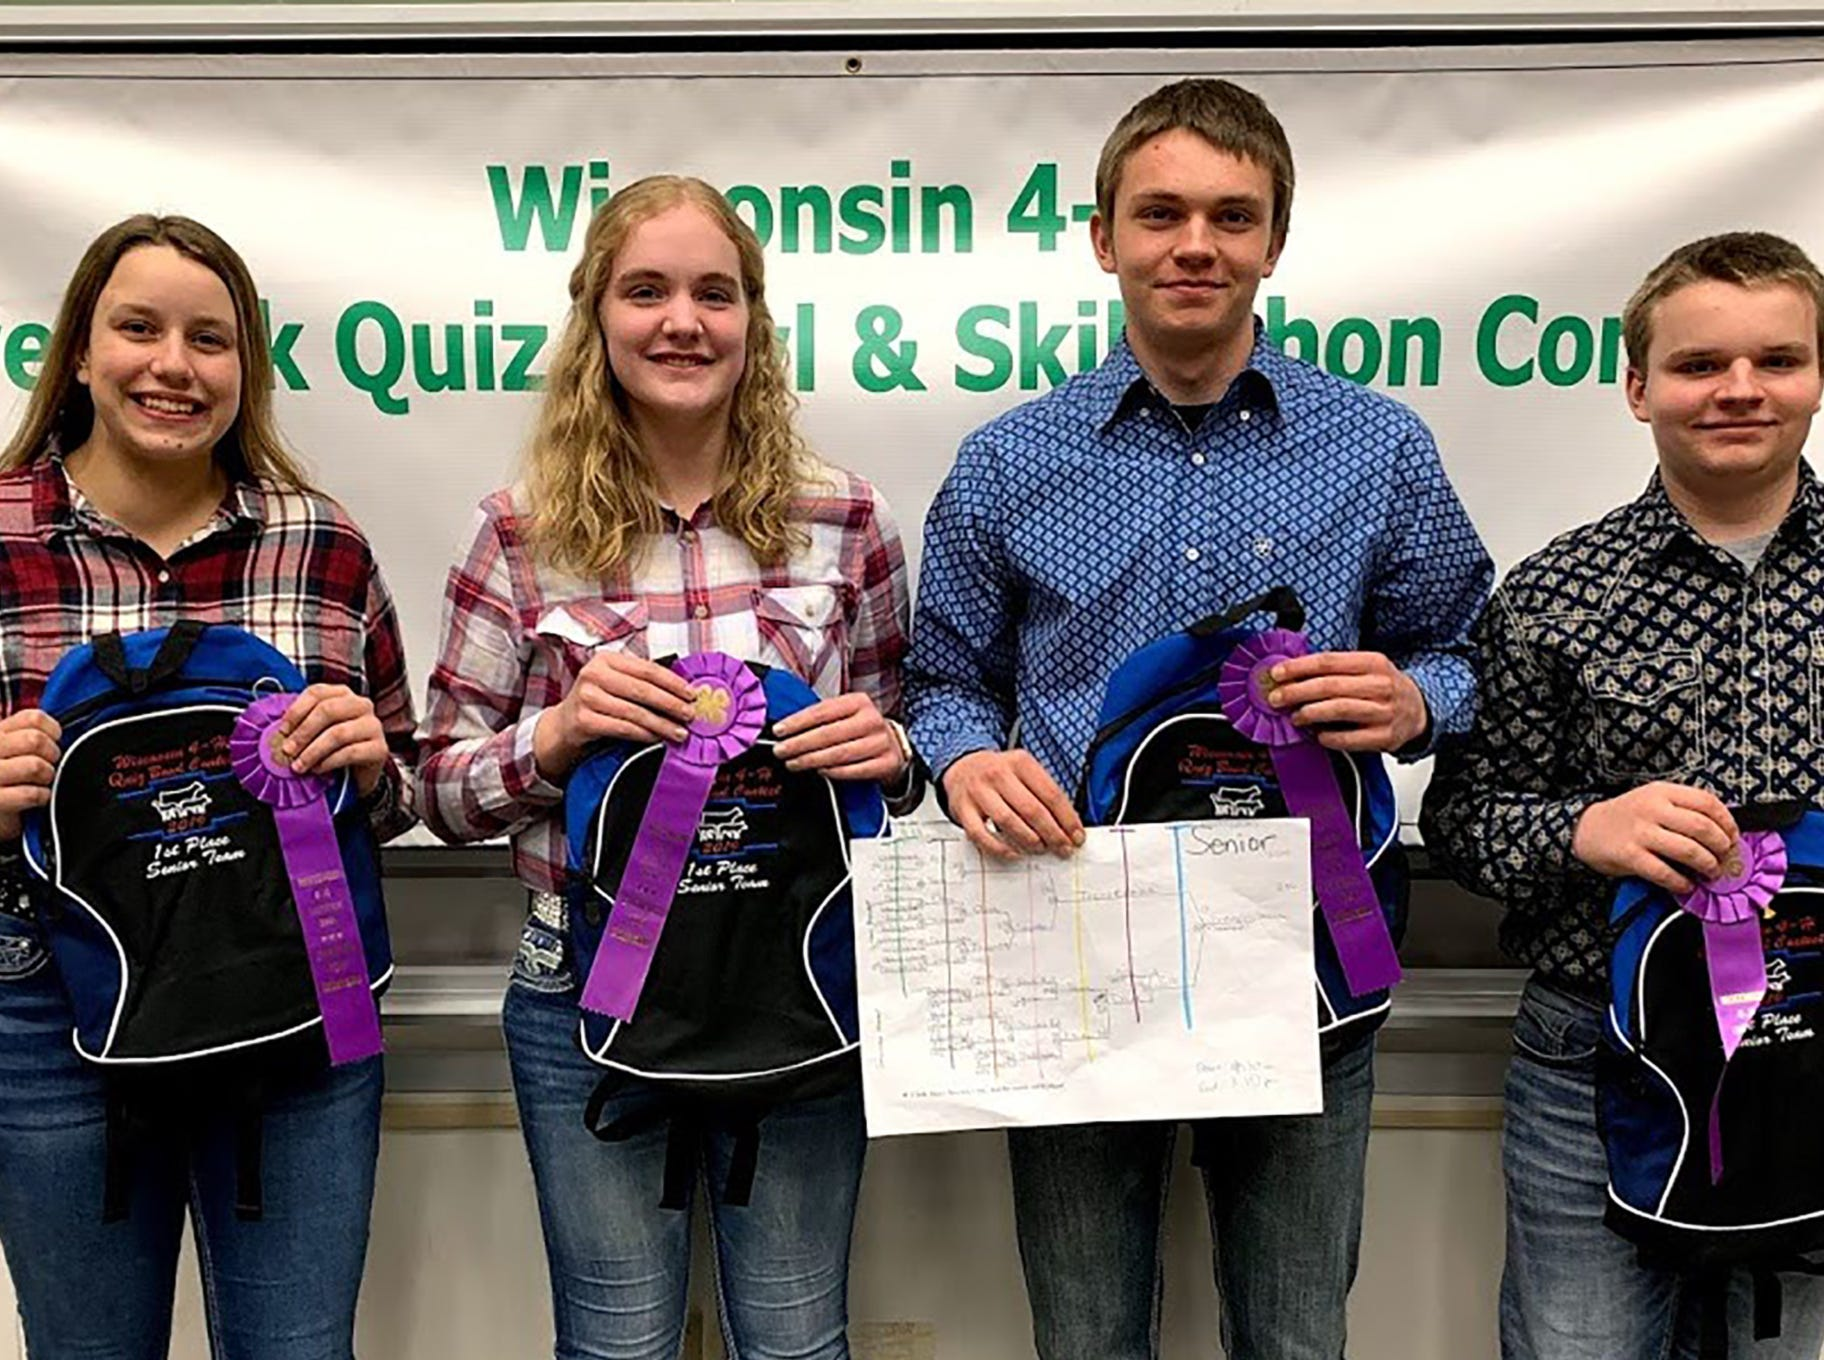 The Senior Quiz Bowl champion team from Trempealeau County consisted of team members (from left) Johanna Haines, Mara Quarne, Blake Johnson, Tyler Johnson.